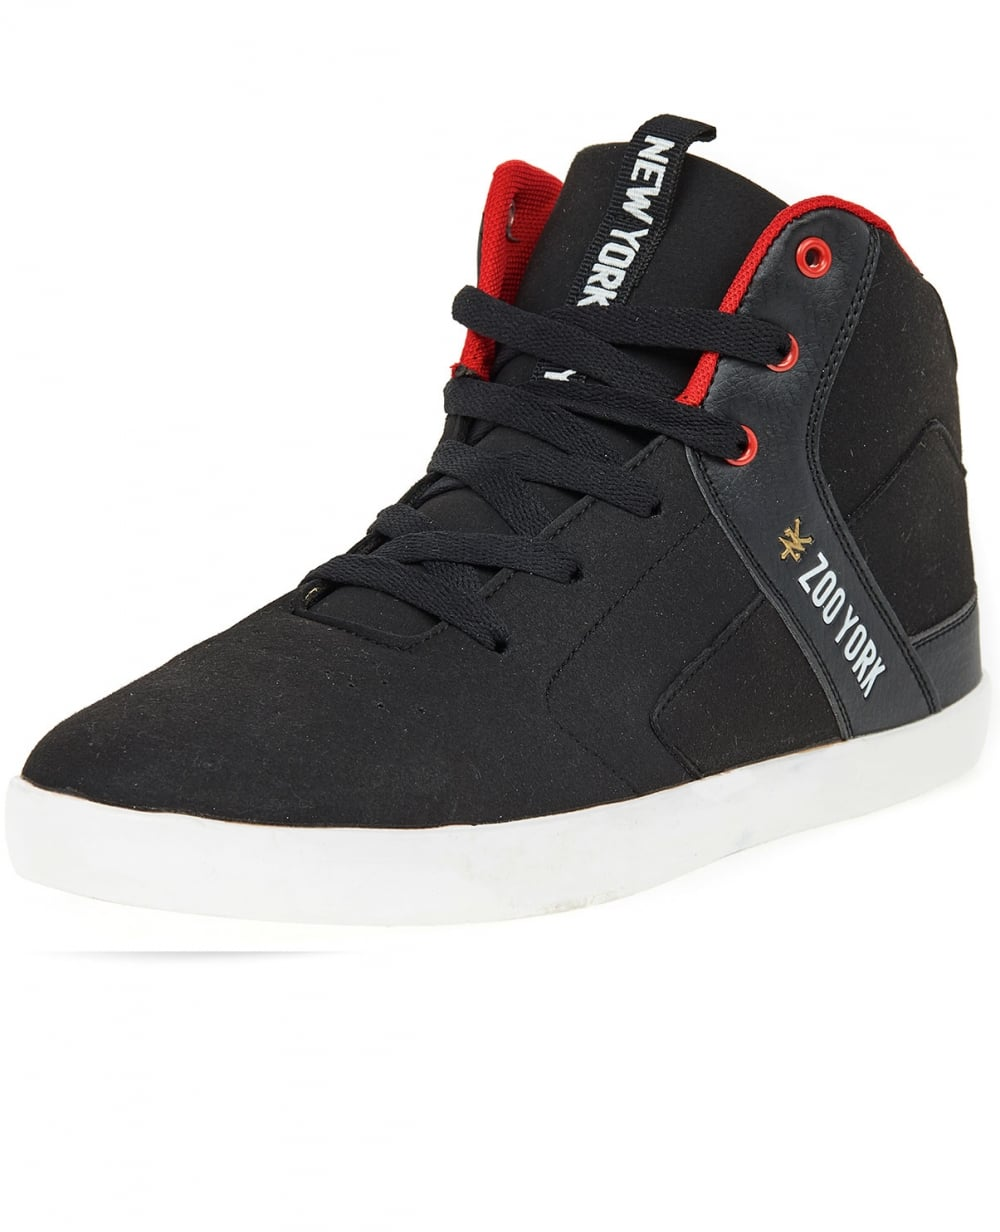 Model NEW ZOO YORK Men Sneakers Sport U0026 Skater Shoes Trainers Large Selection | EBay